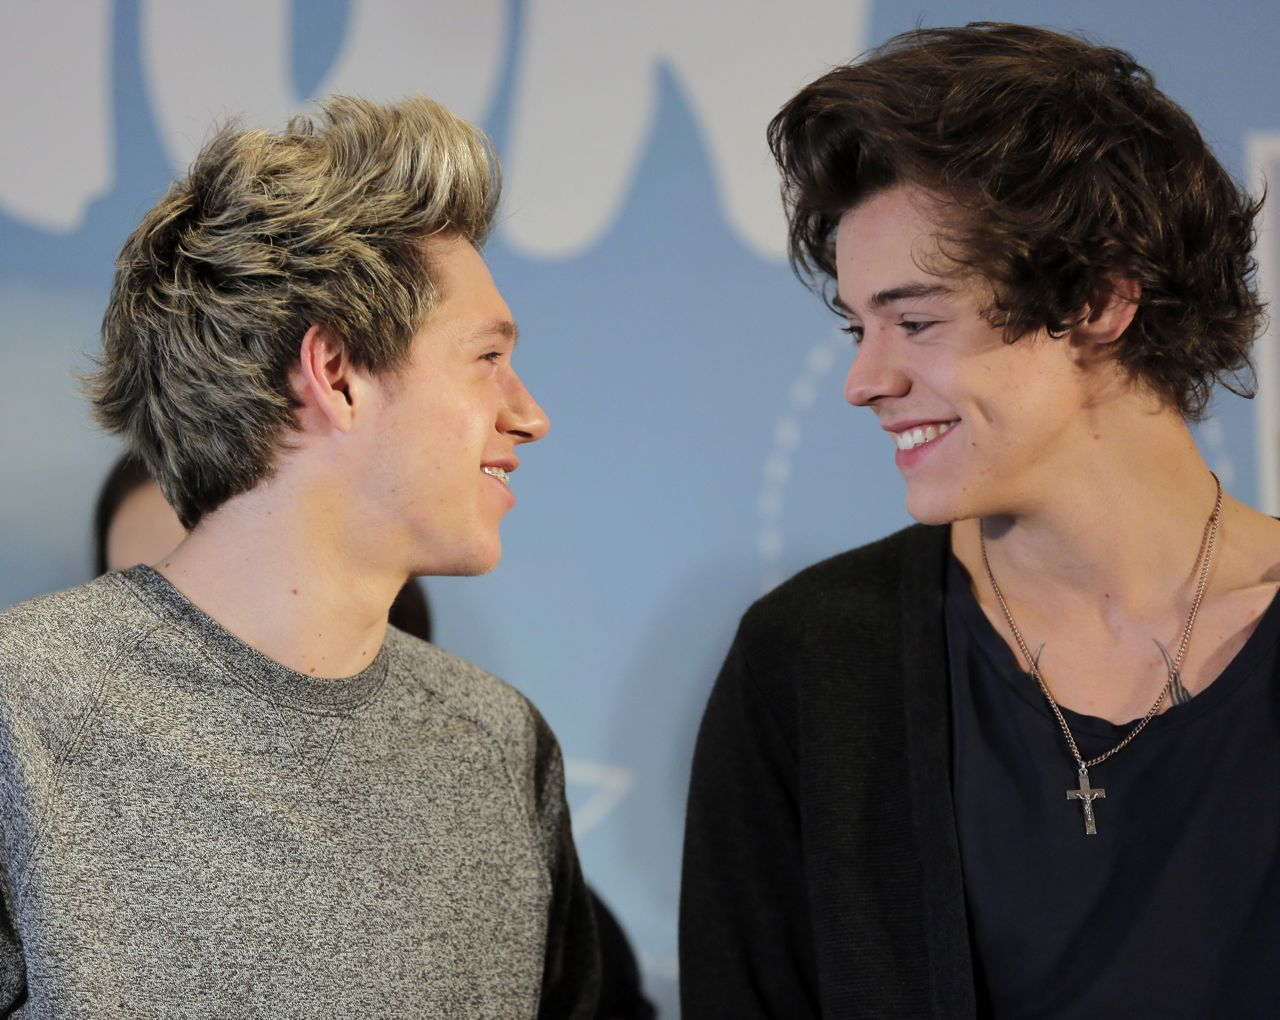 Niall Horan, Harry Styles